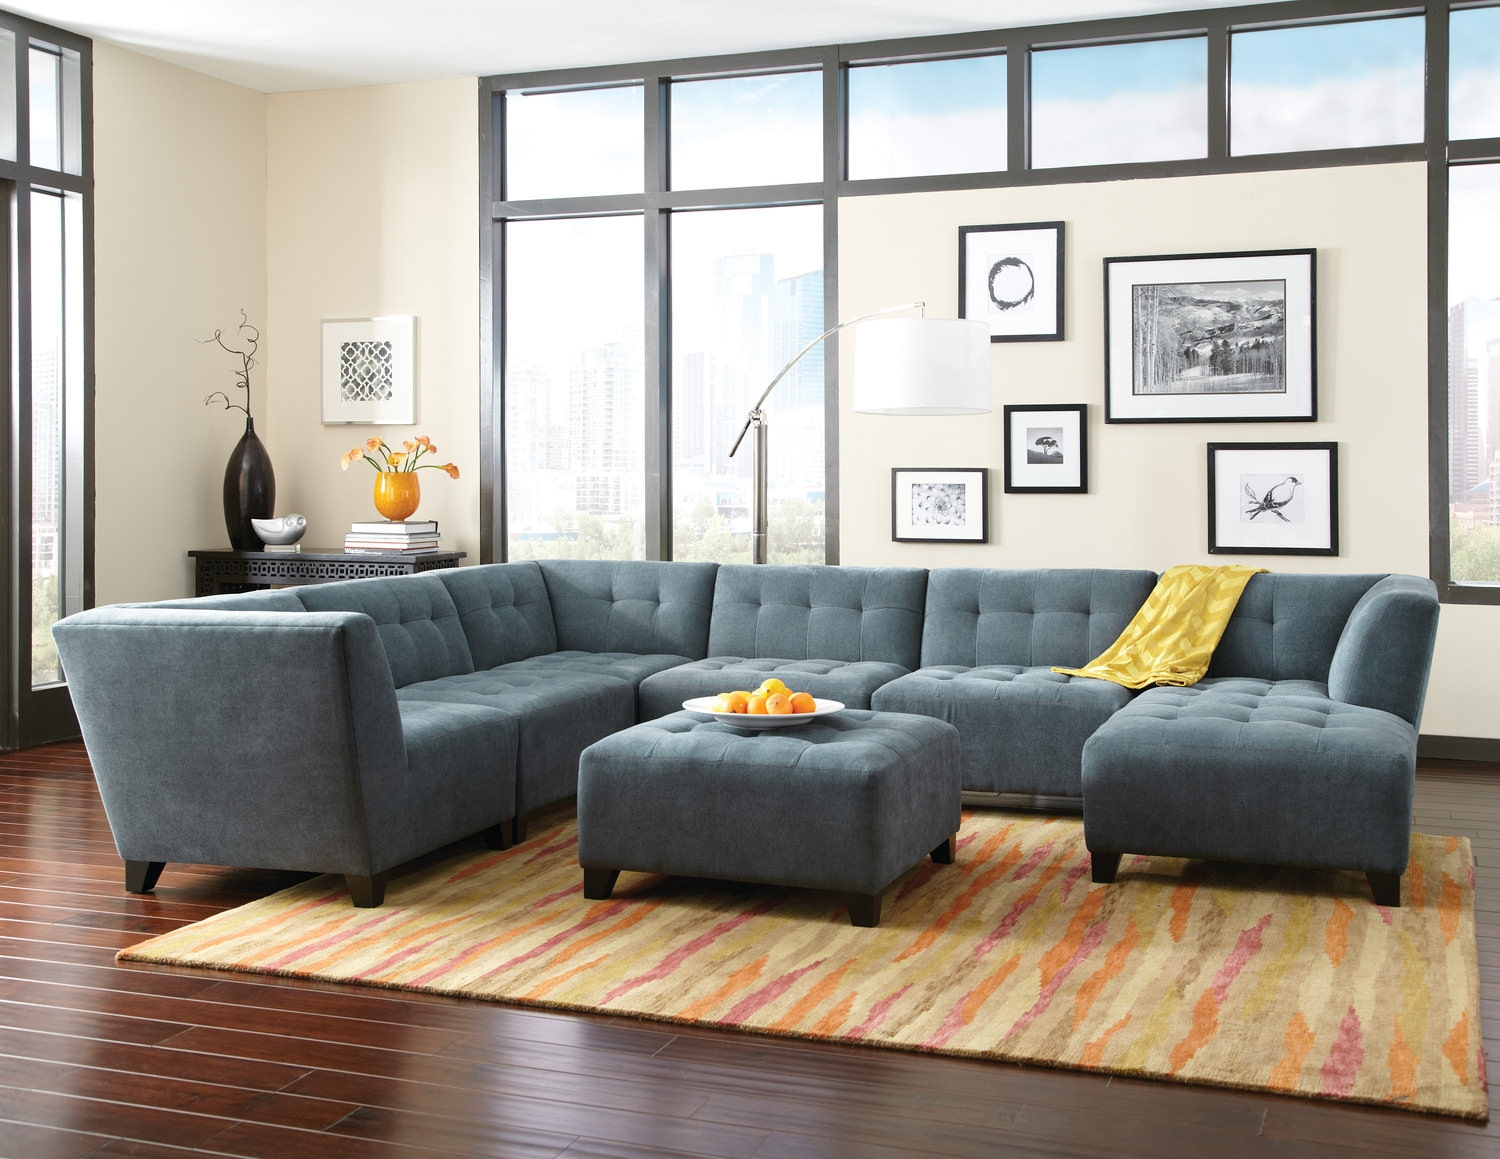 Modular Sofas For Small Es All Information Sofa Desain Ideas For 6 Piece Modular Sectional Sofa (Image 8 of 15)